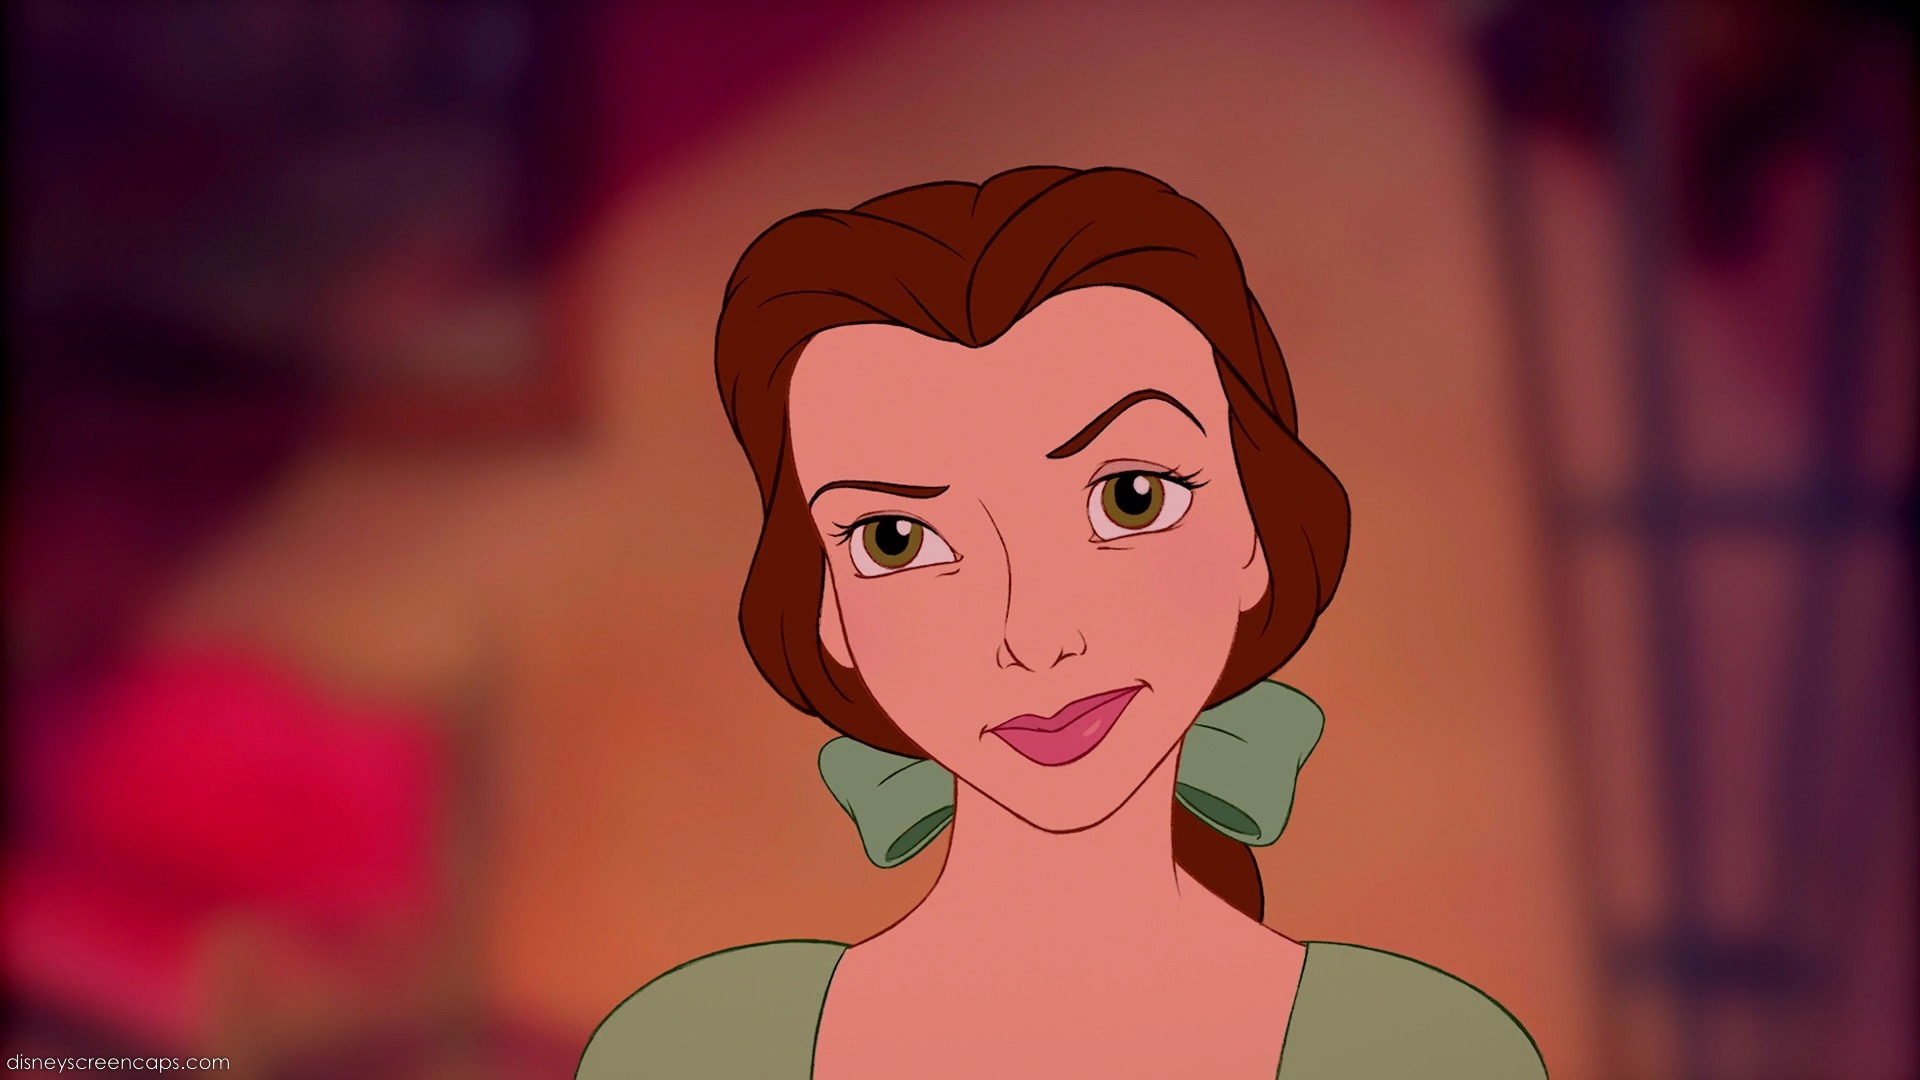 Hair color not hair style poll results disney princess fanpop - What Do You Like Most About Belle Poll Results Disney Princess Fanpop